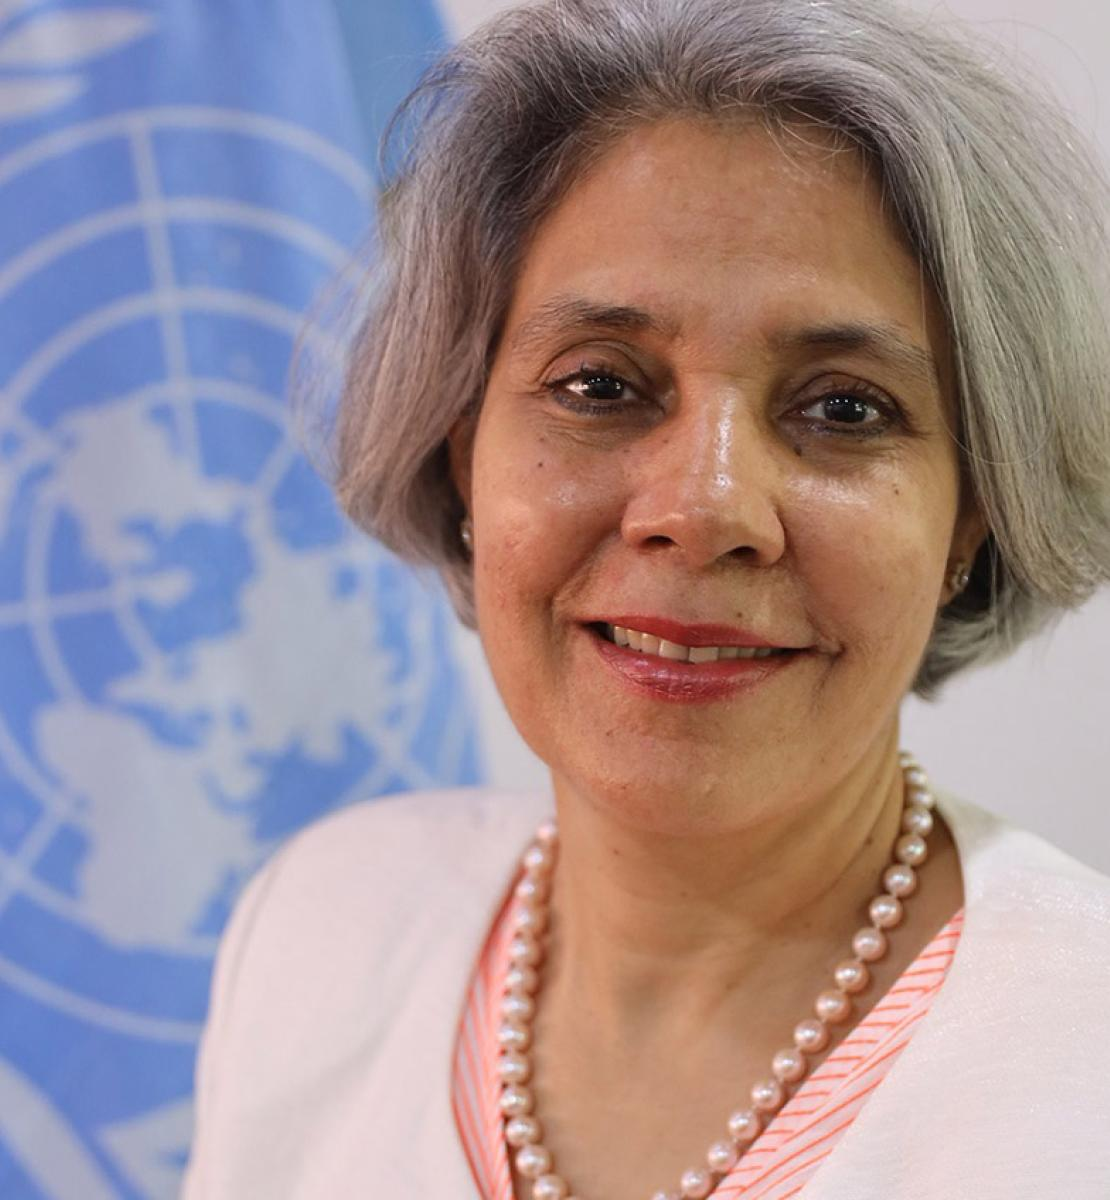 Official photo of Gita Sabharwal. She is shown smiling in front of the UN Flag.